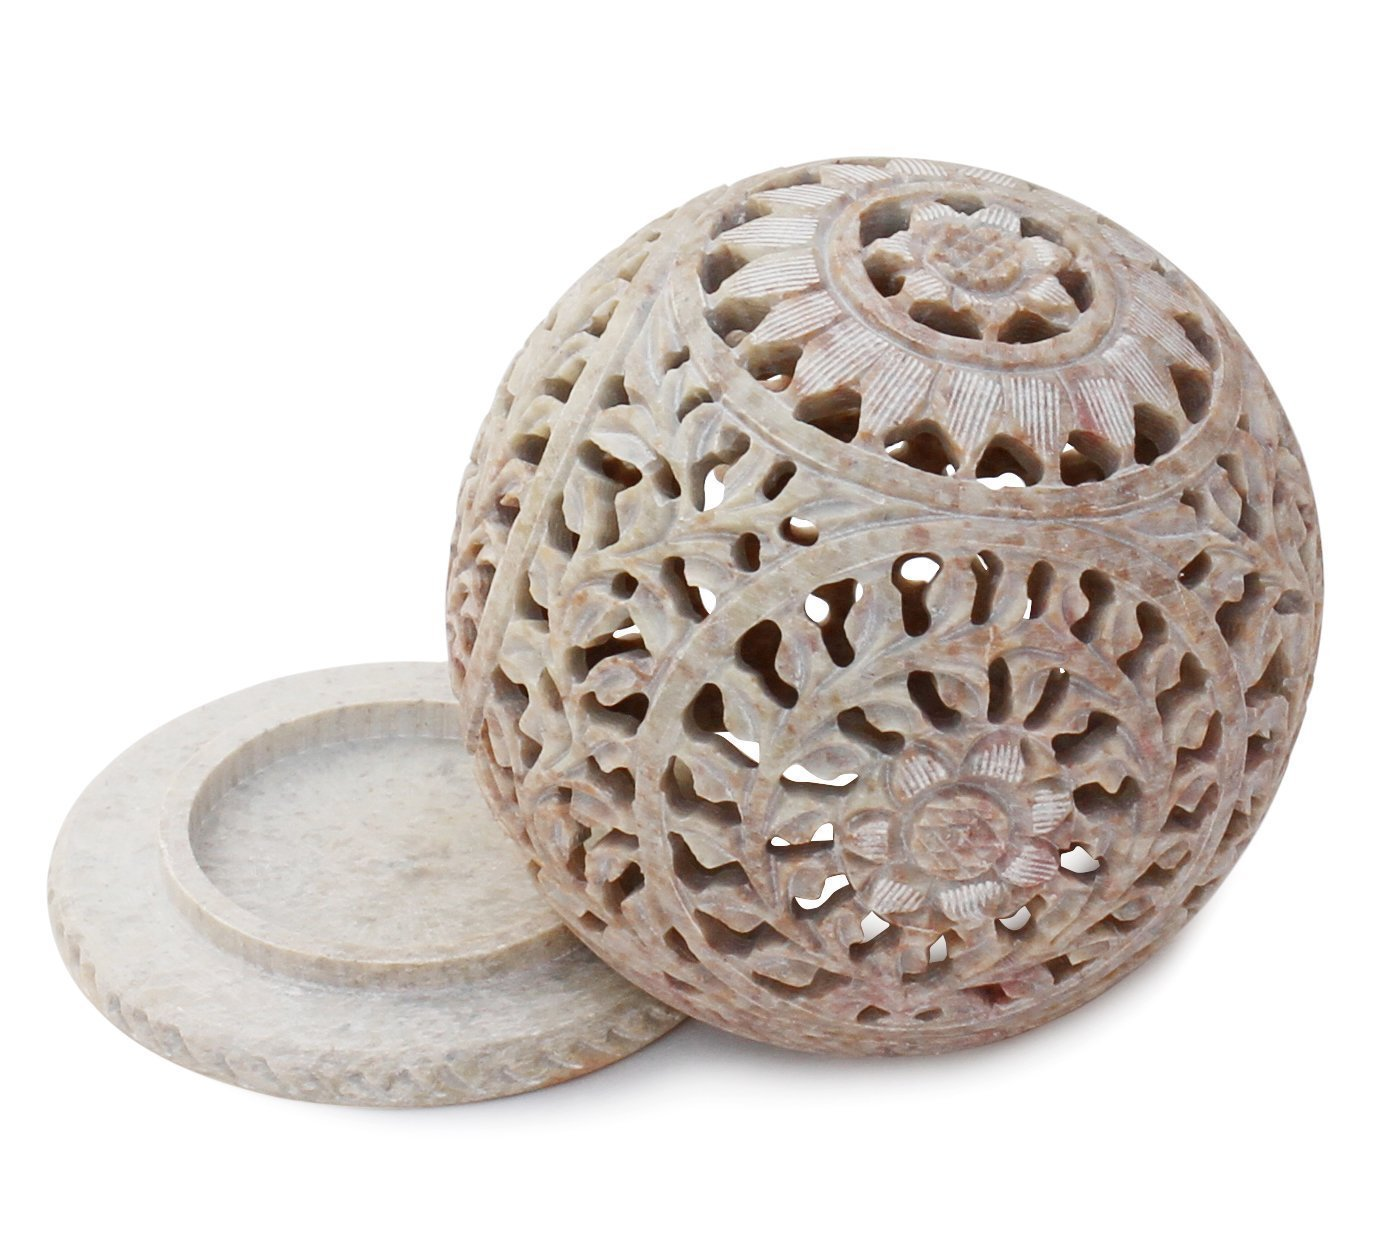 Artistic India Soapstone Tealight Candle Holder Sphere,4'',Shaped with Intricate Tendril Openwork-Table Decorative Candle Holders for Home, Living Room & Office.